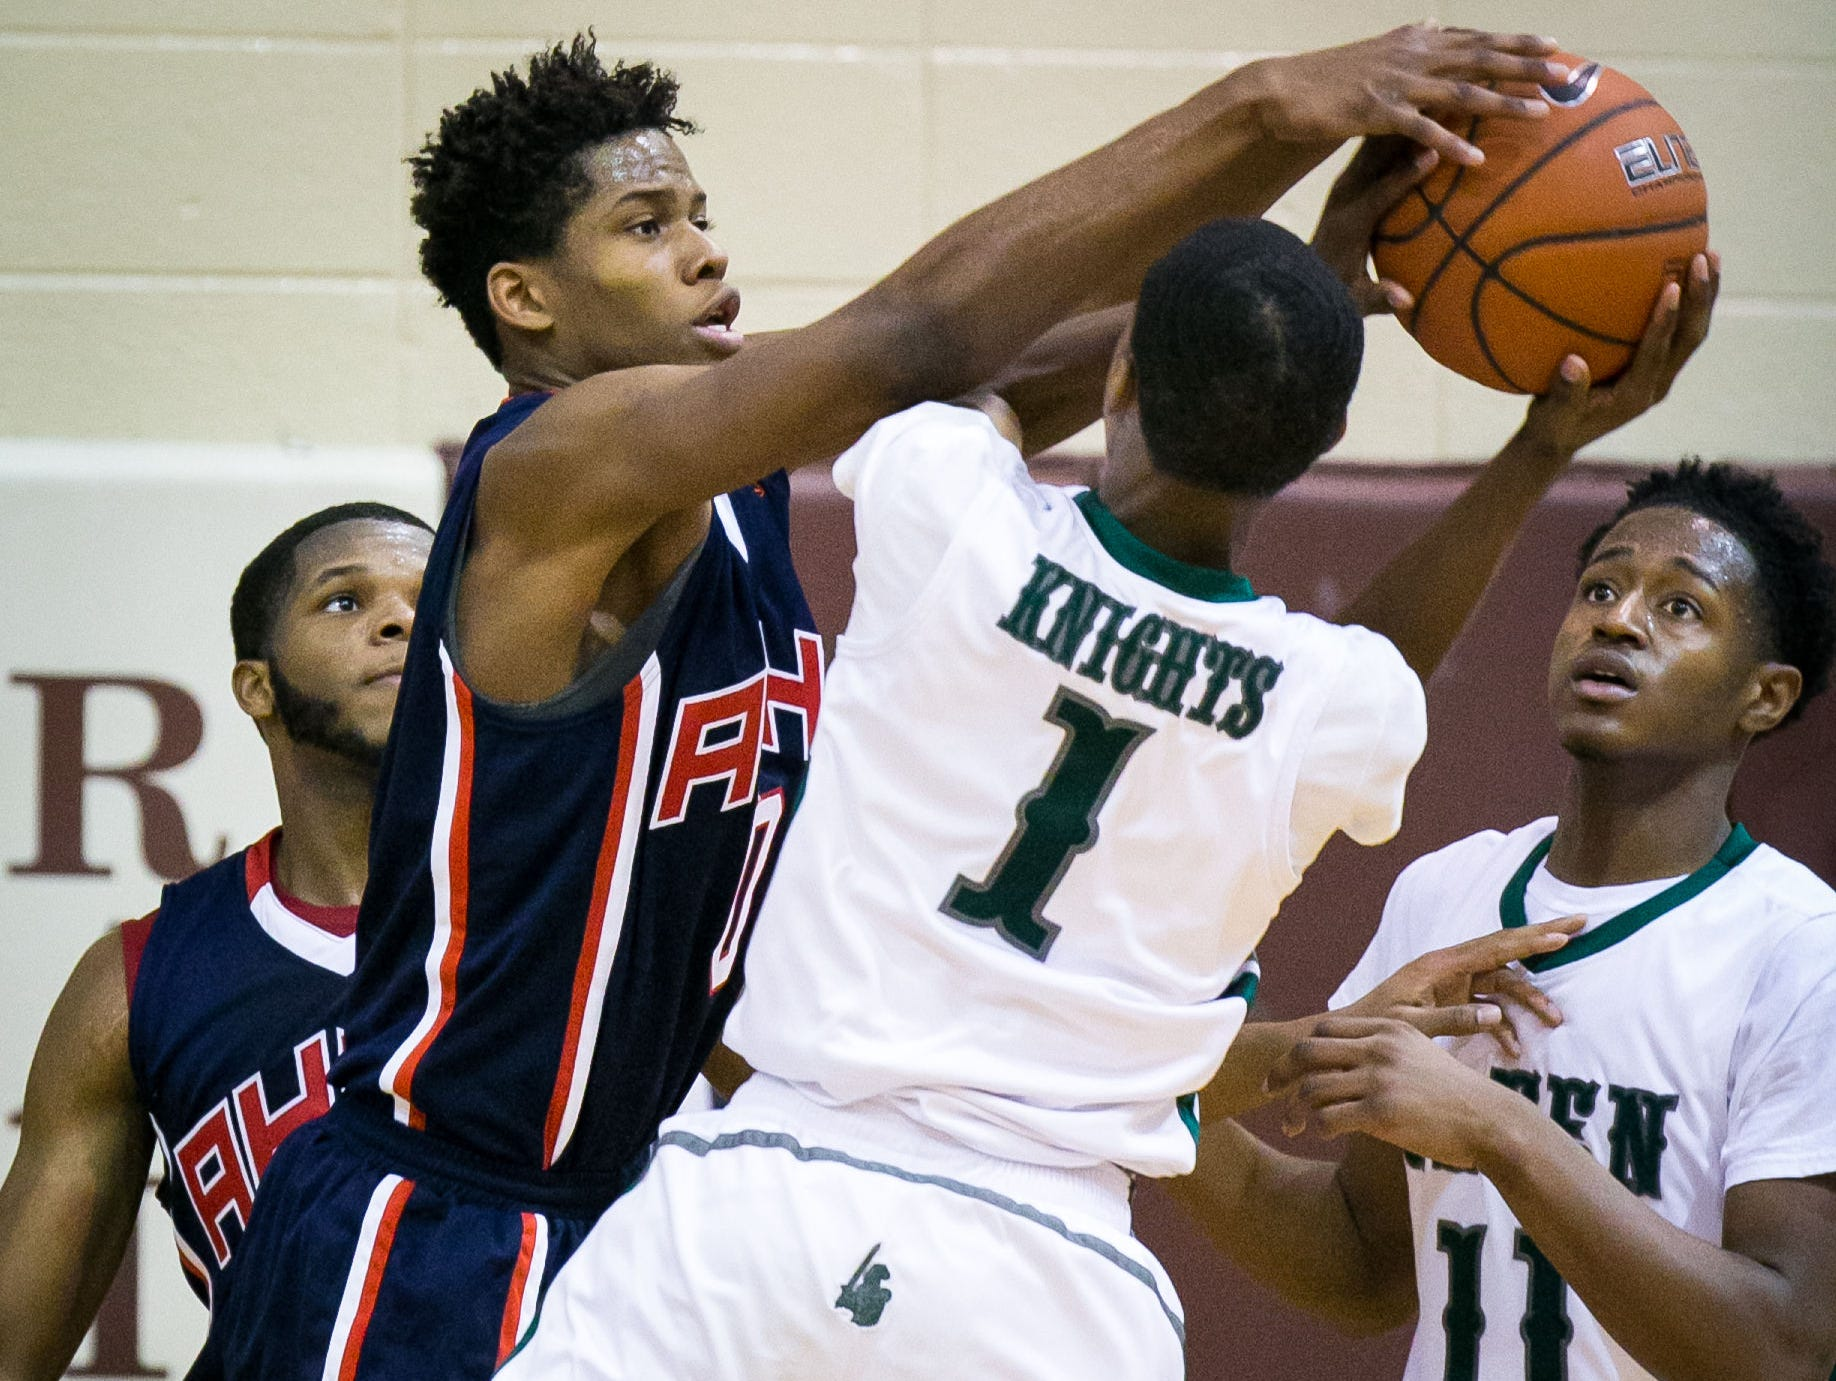 Yvens Monfluery (left) of American History blocks Sharif Holland of Mount Pleasant as he drives to the basket.